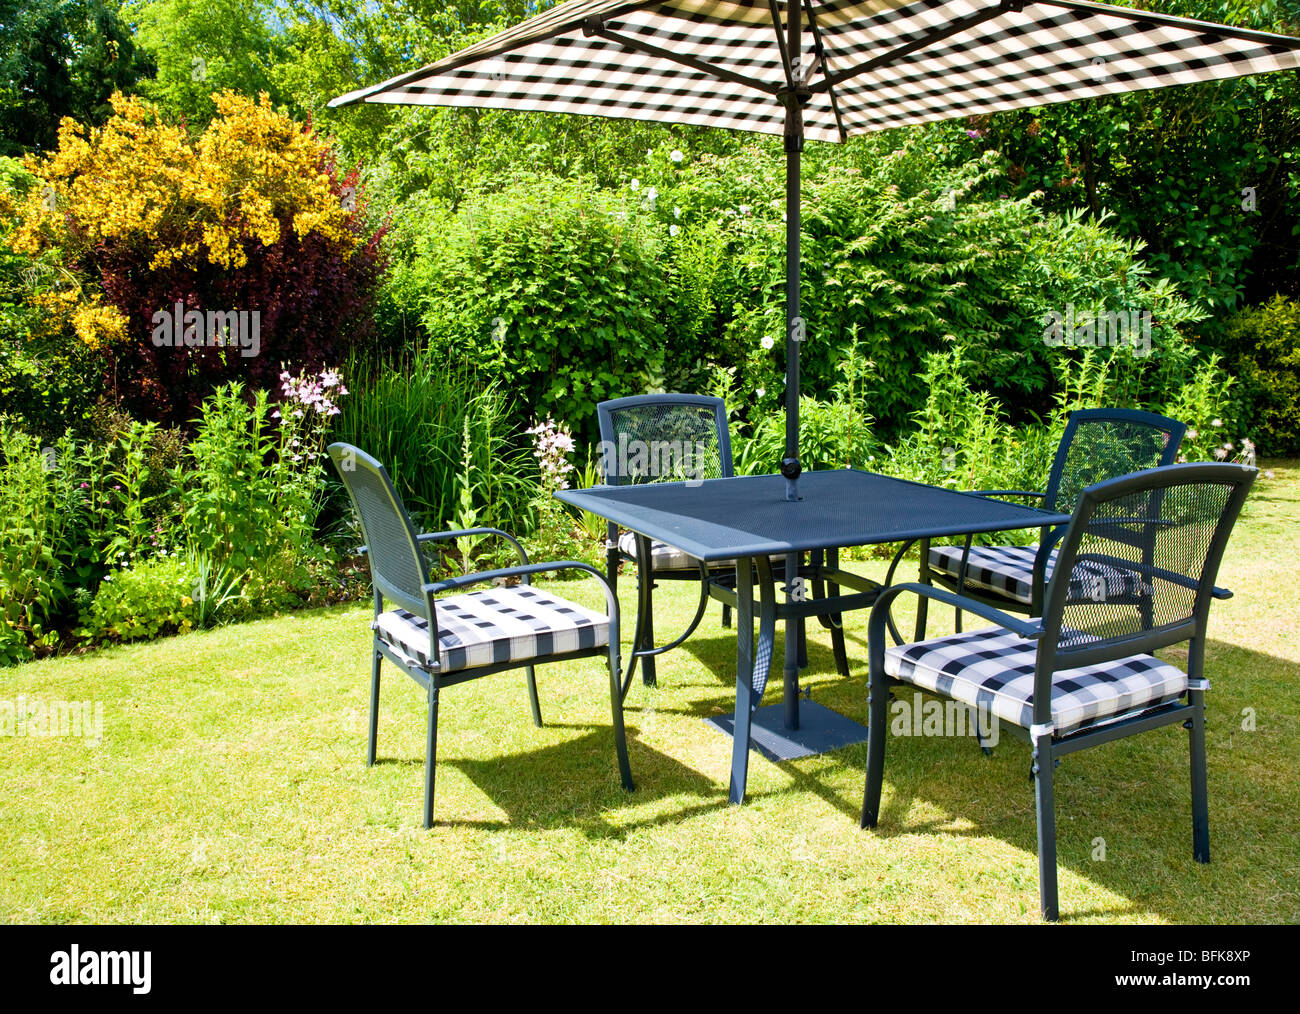 Modern garden furniture set out on a lawn in a typical for Modern garden furniture